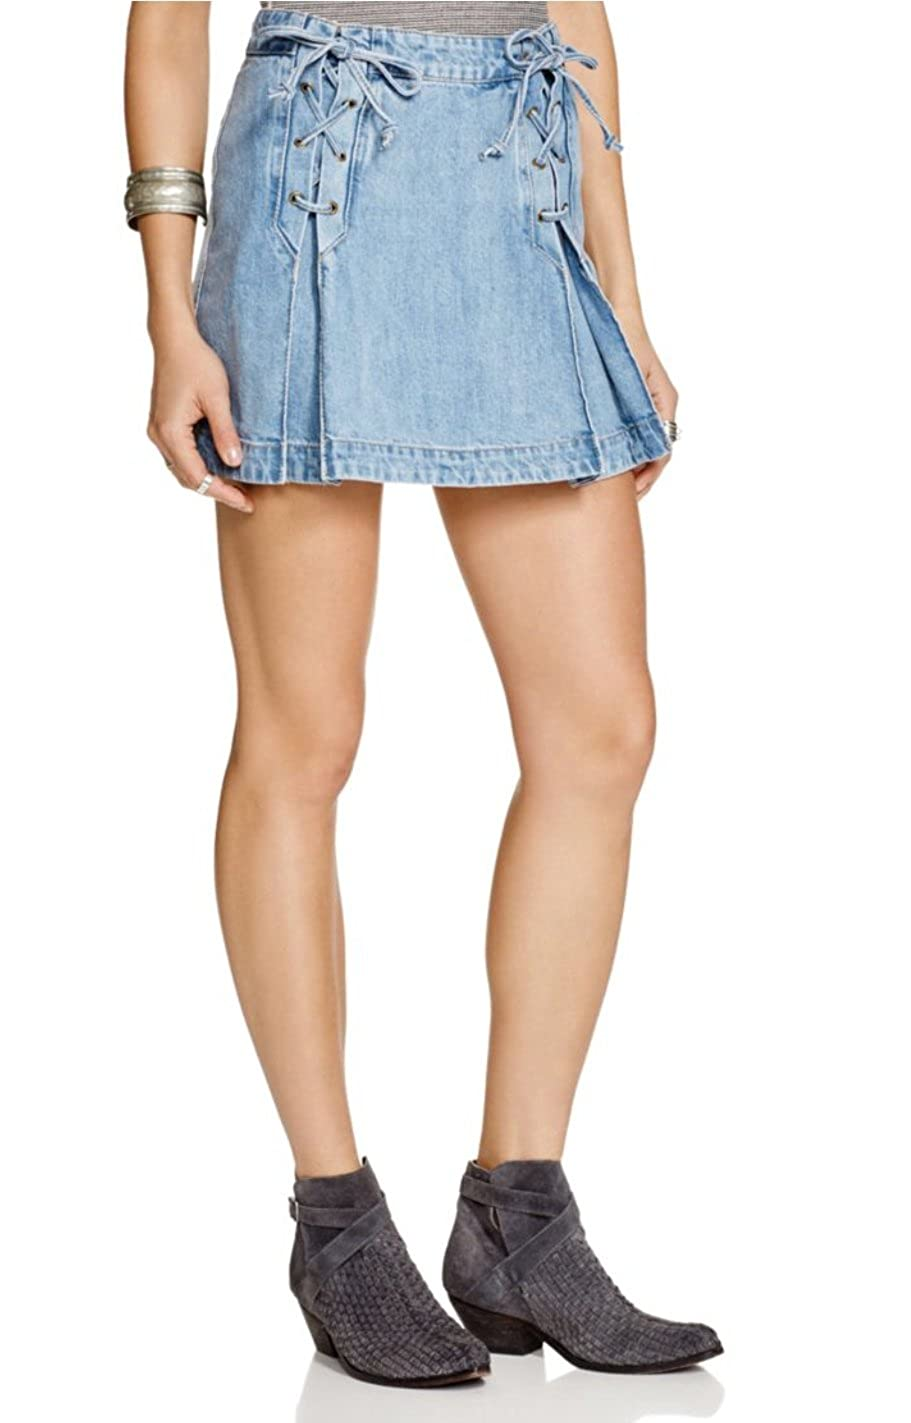 coupon codes terrific value Discover Free People Womens Lace Up Denim Skirt (4, Light Denim) at ...